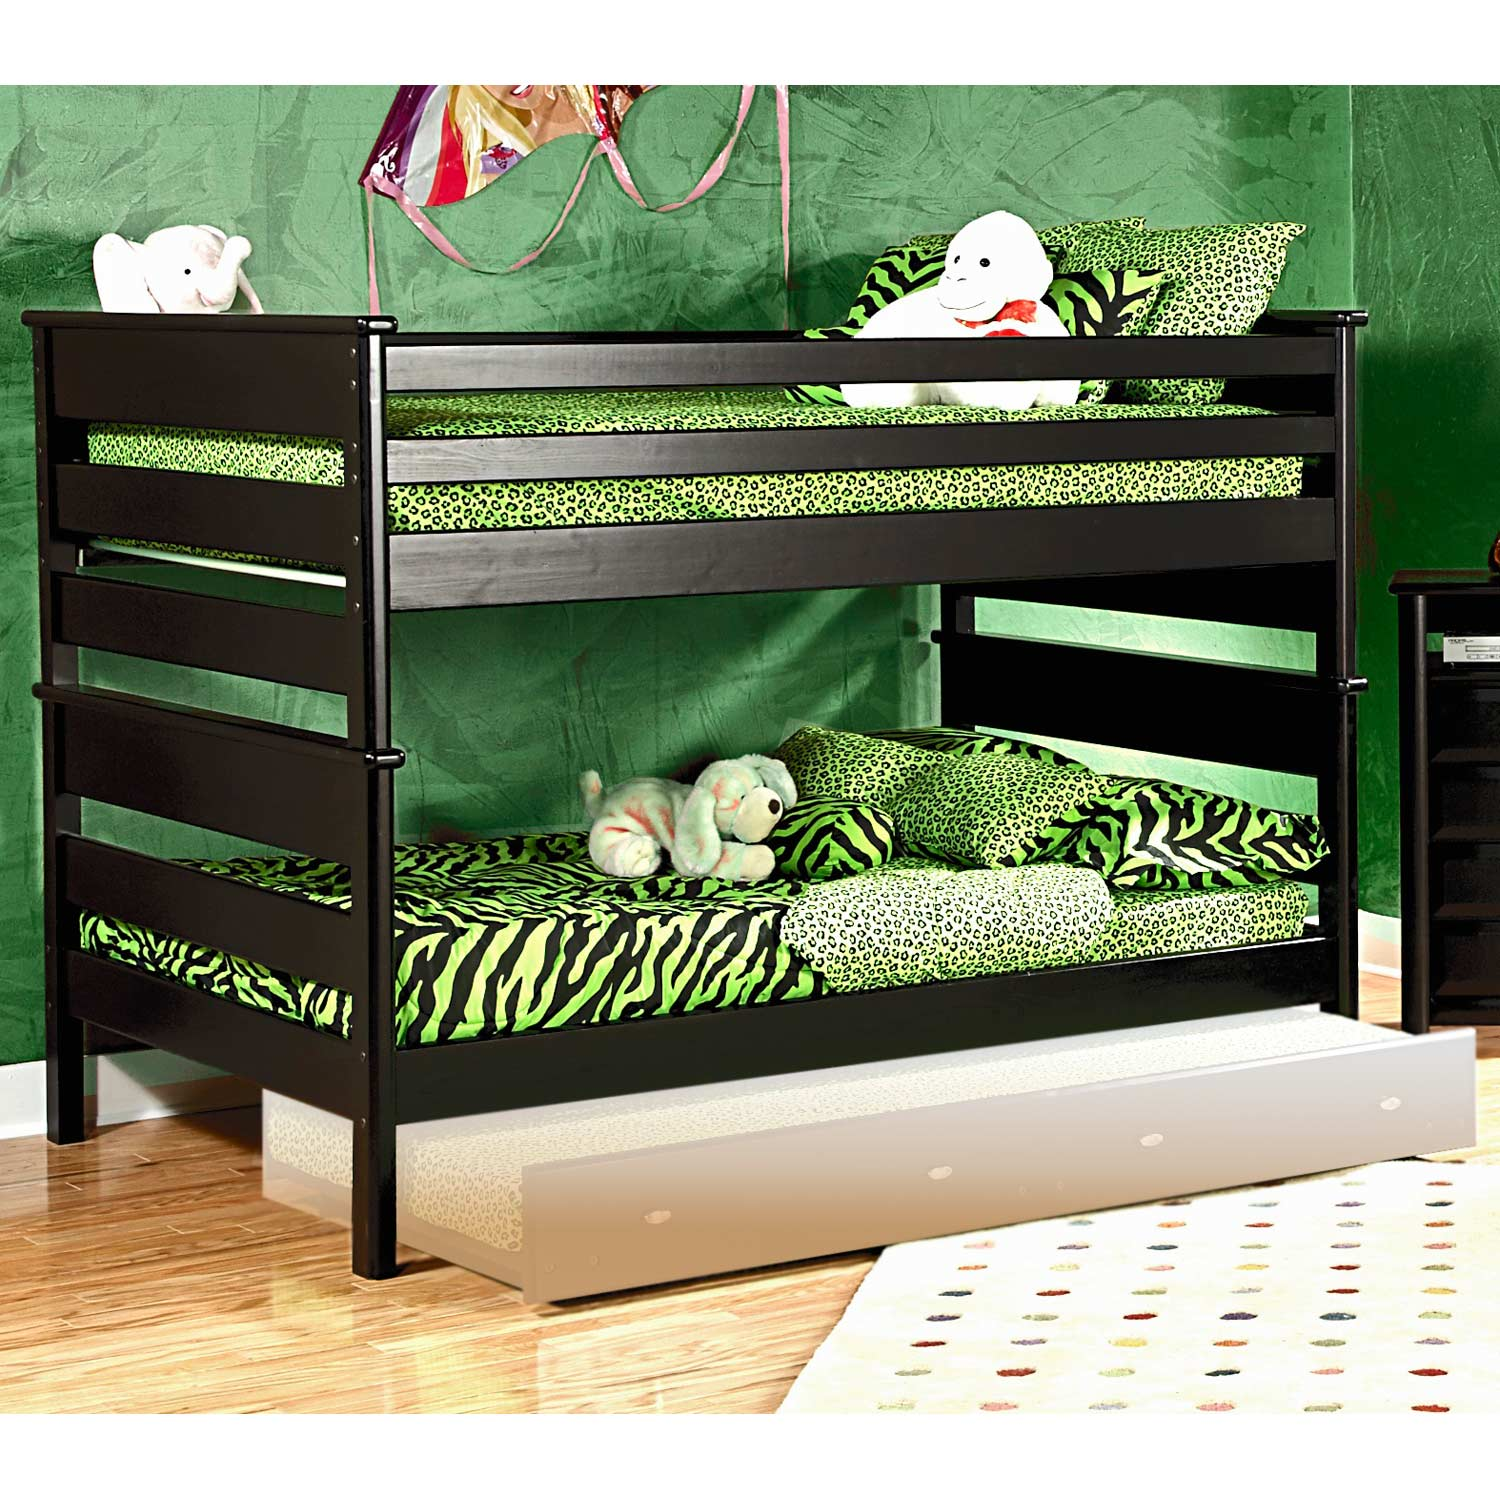 Full Over Full Bunk Bed - Black Cherry Finish